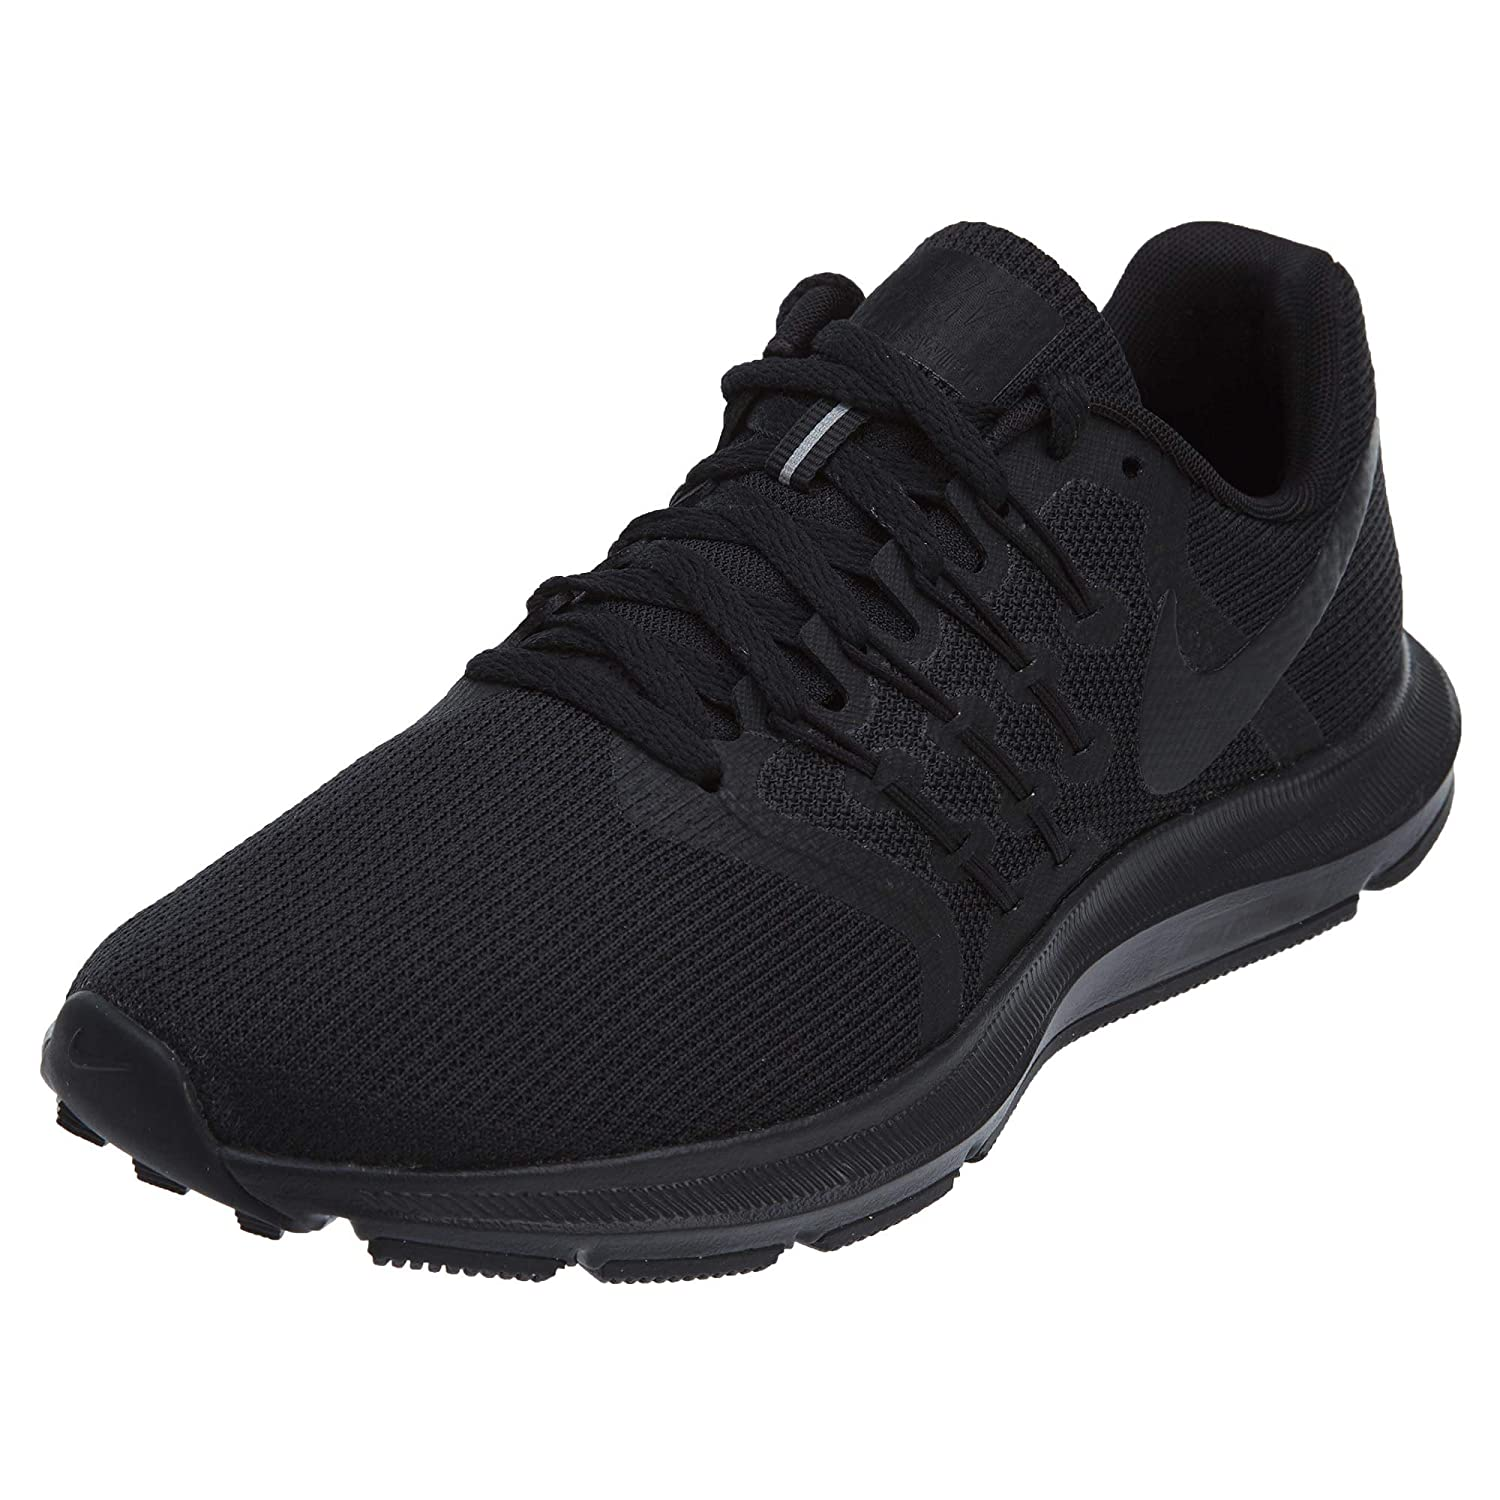 Nike WMNS Run Swift damen 909006-019 909006-019 909006-019 Größe 8 2f75b2